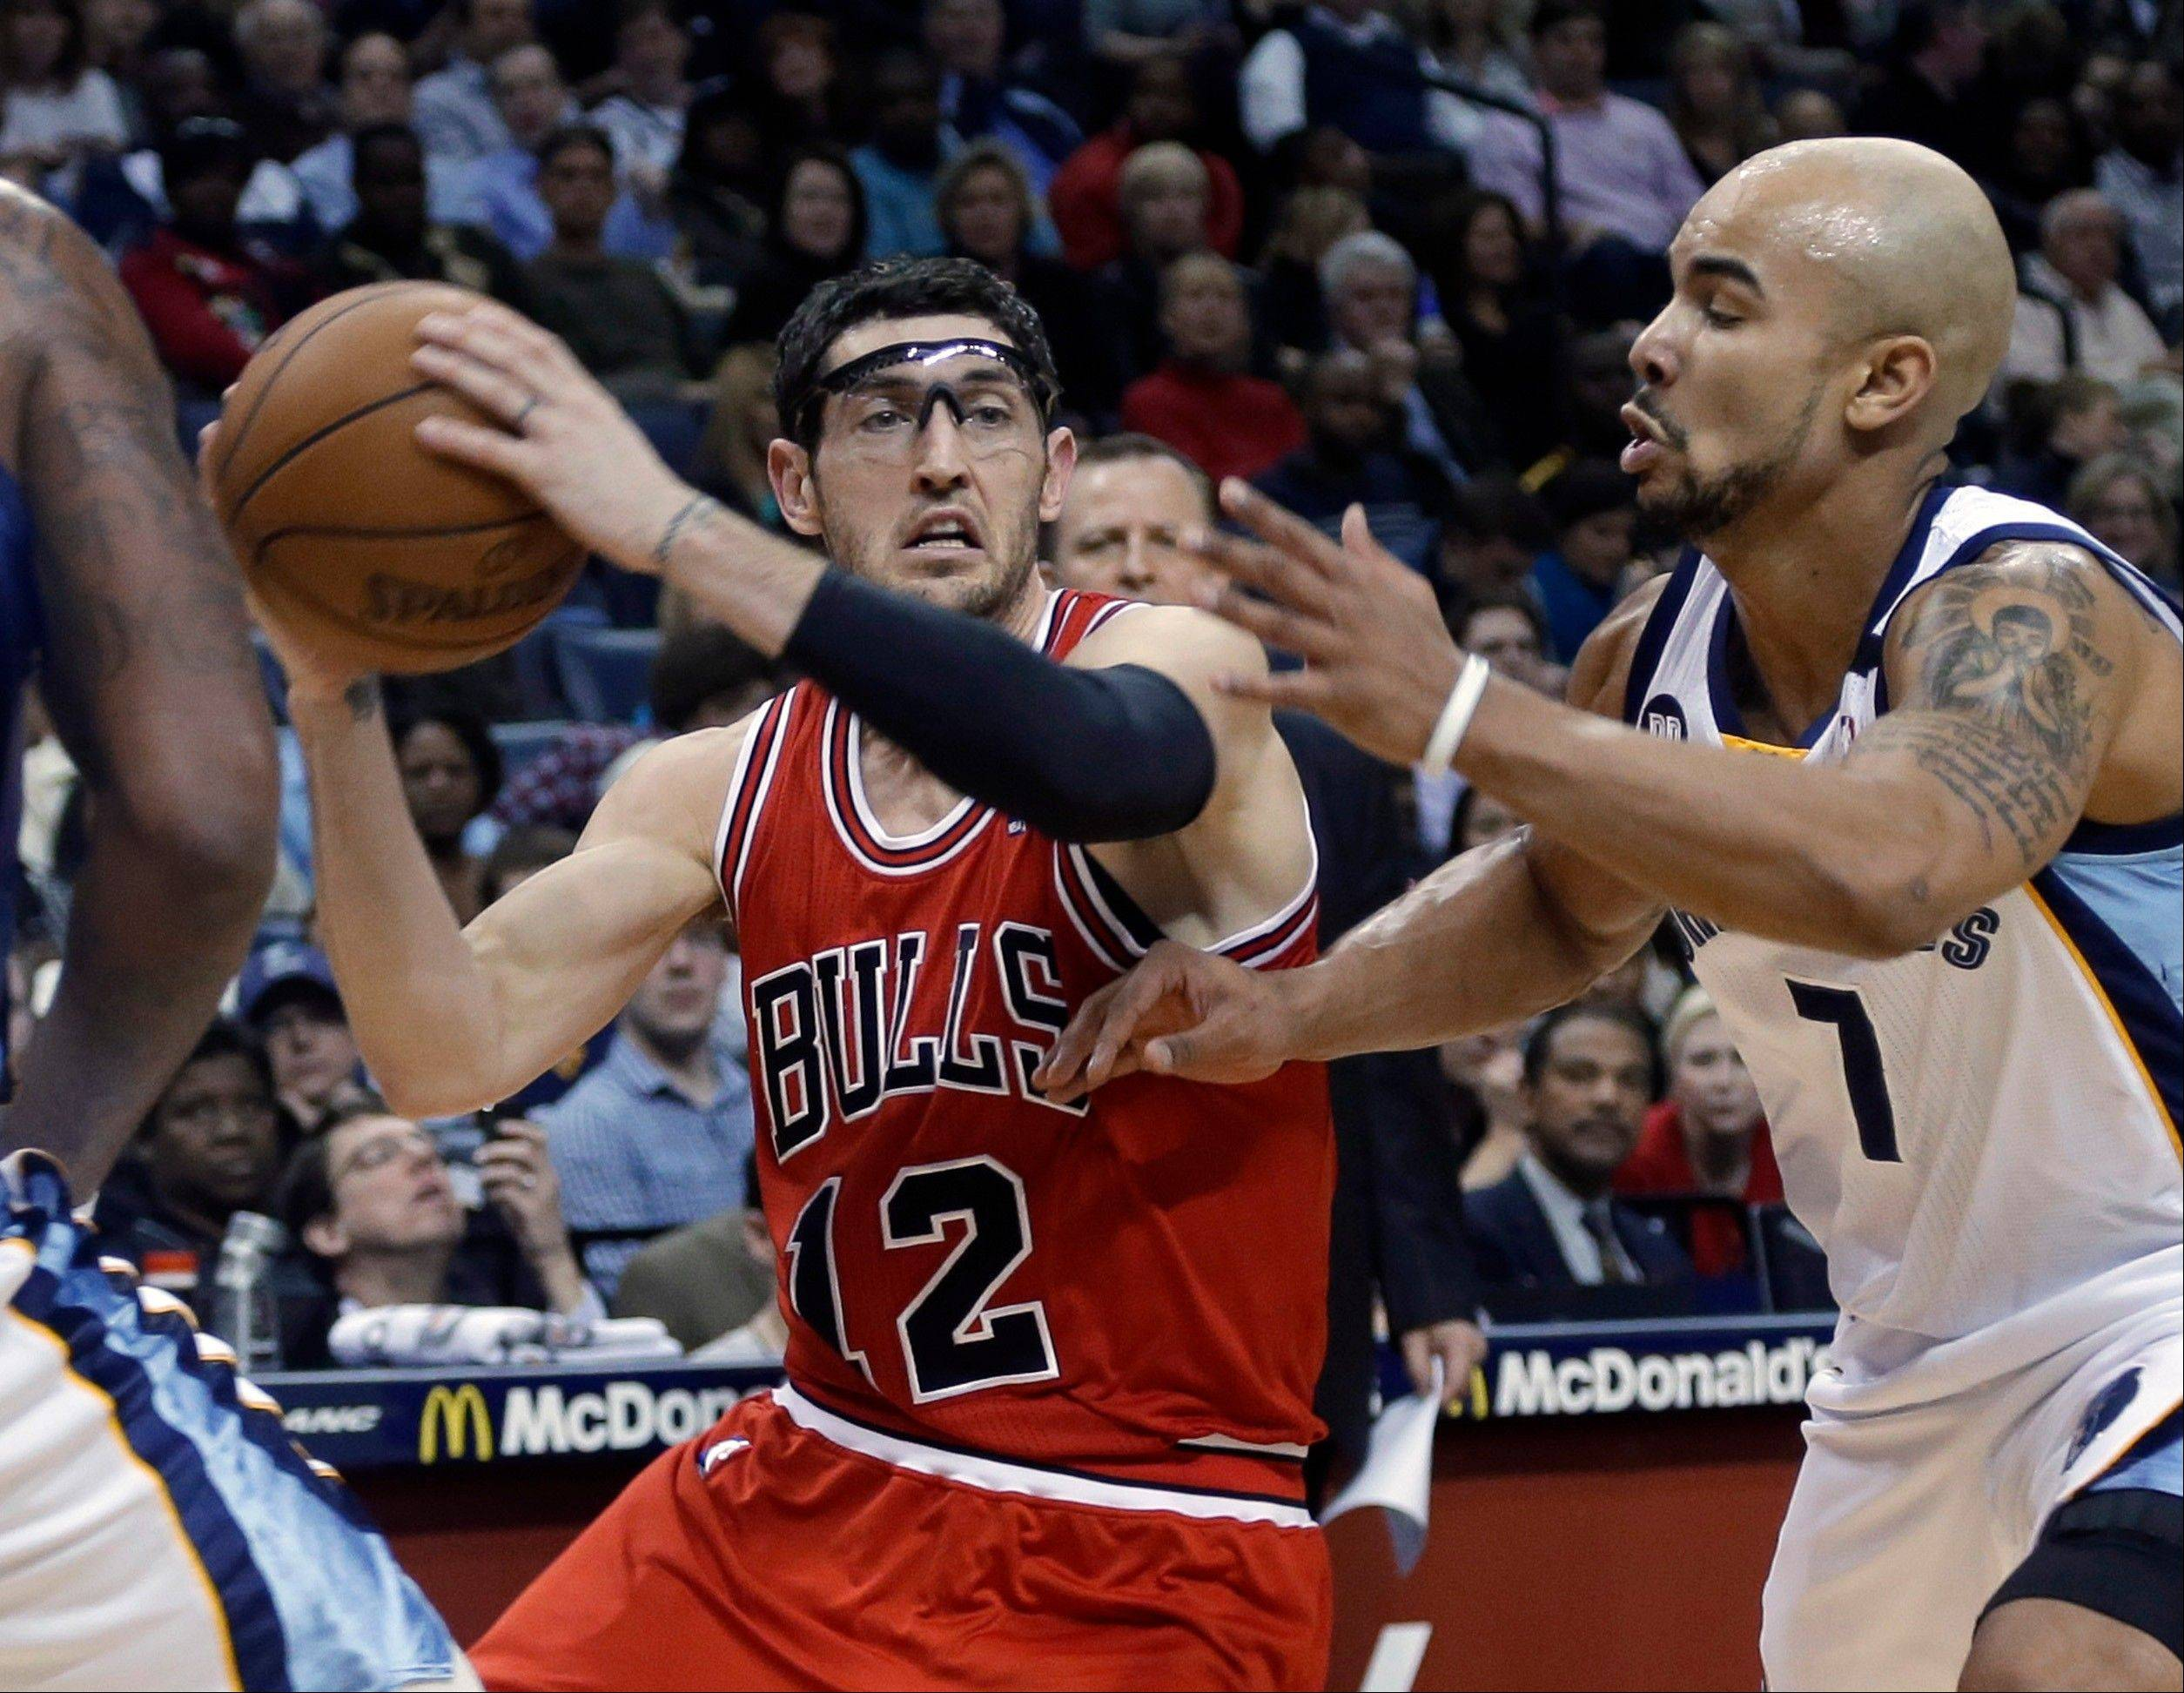 Bulls guard Kirk Hinrich is pressured by the Grizzlies' Jerryd Bayless.